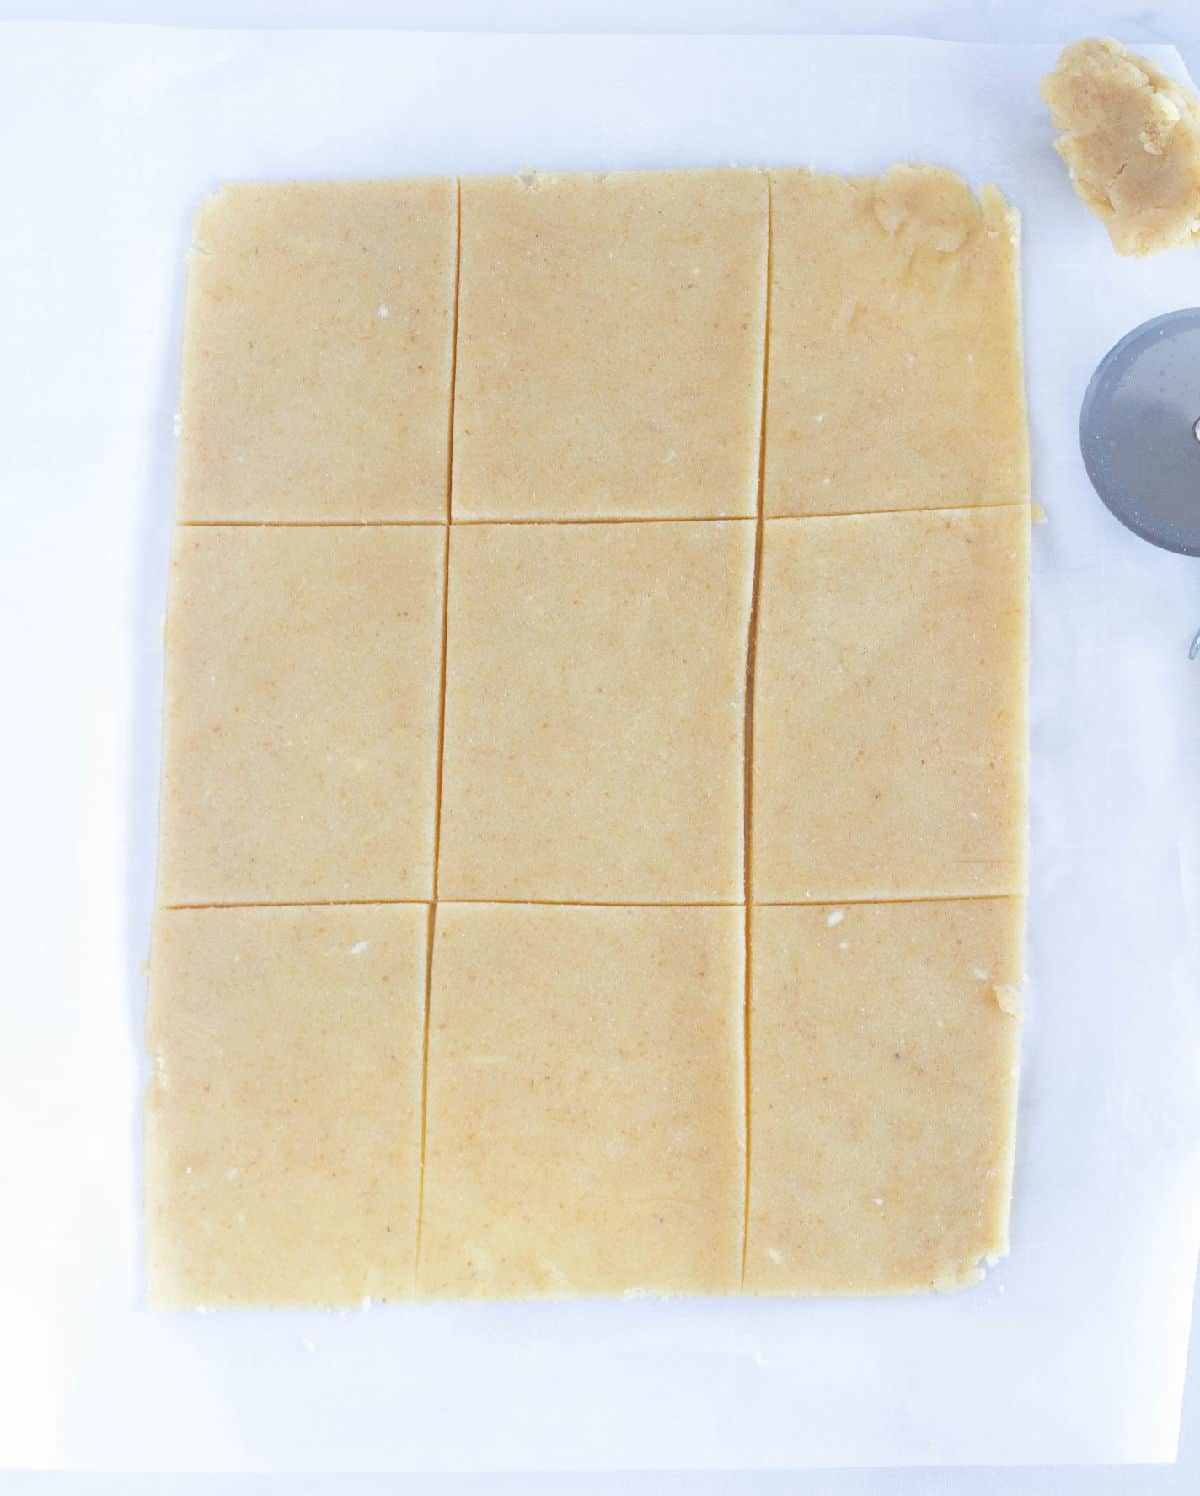 dough rolled out and cut into 9 rectangles